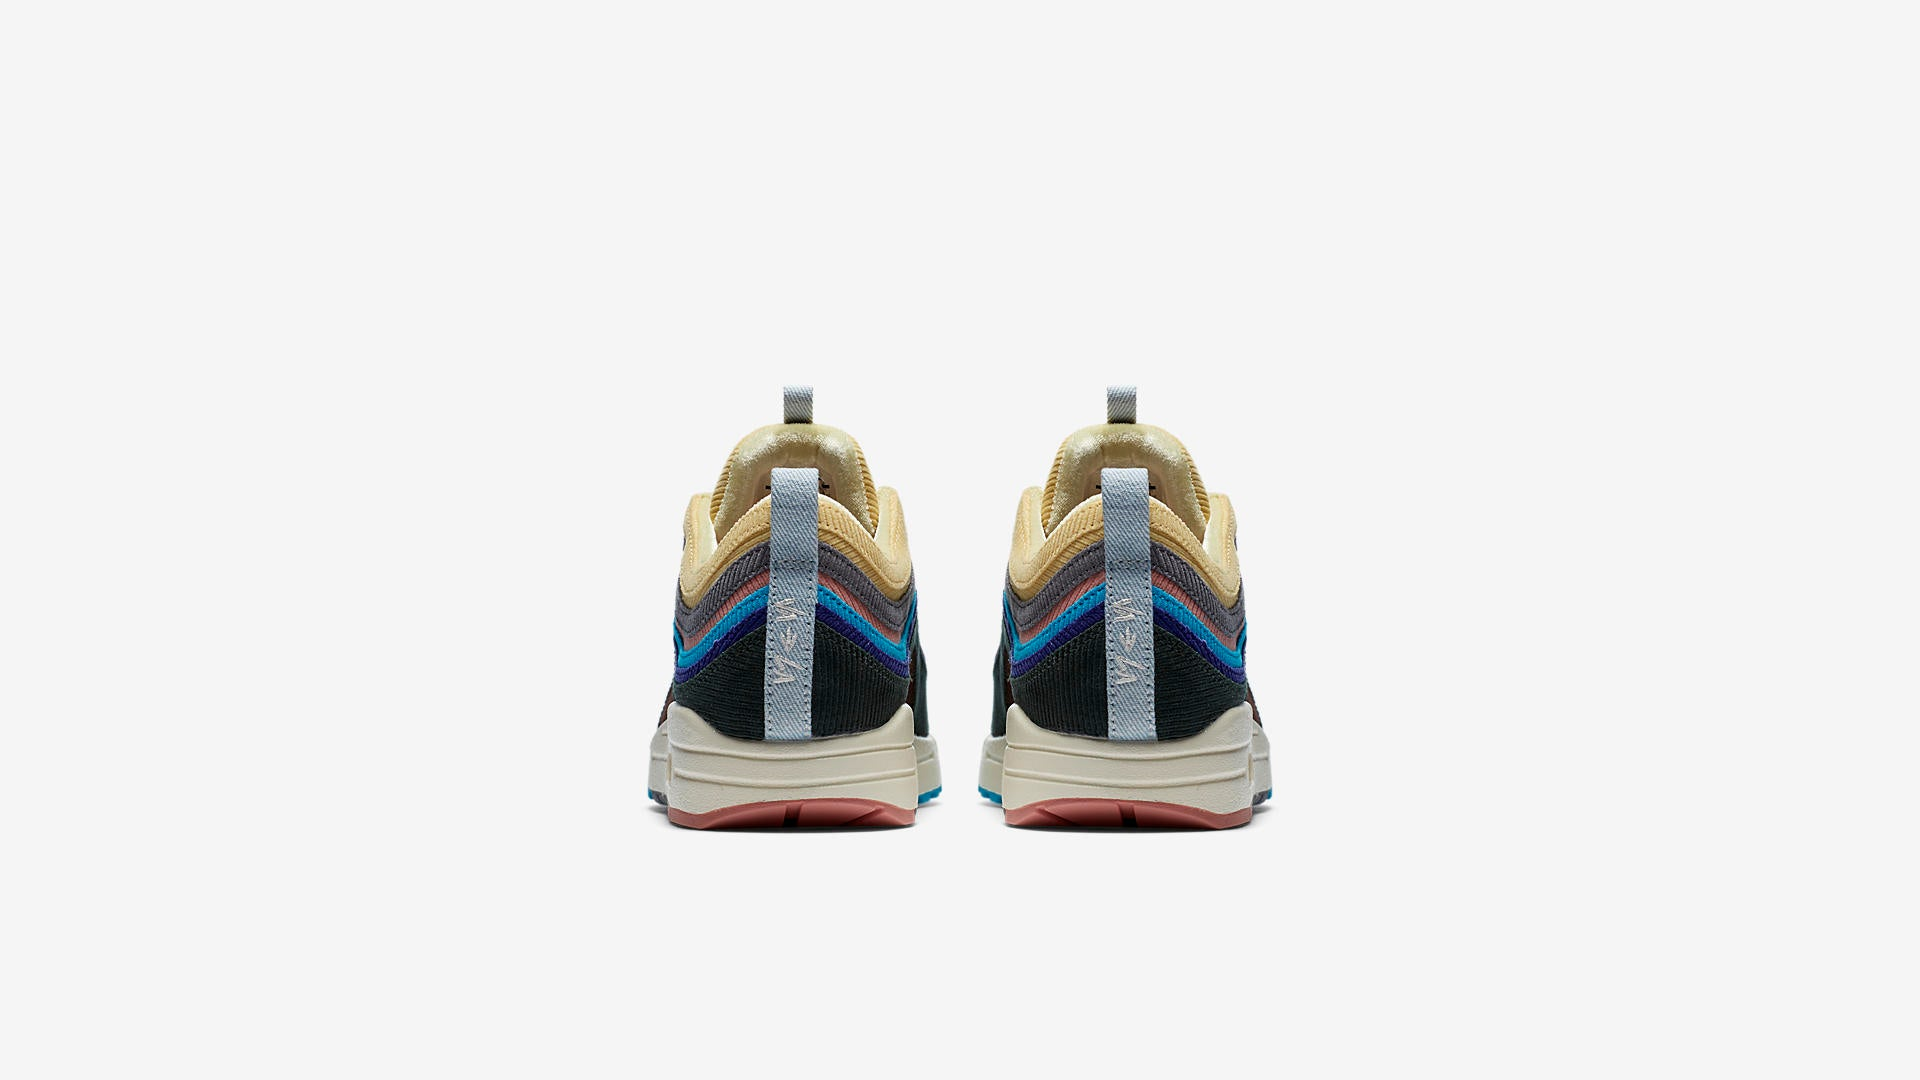 Sean Wotherspoon Nike Air Max AM1/97